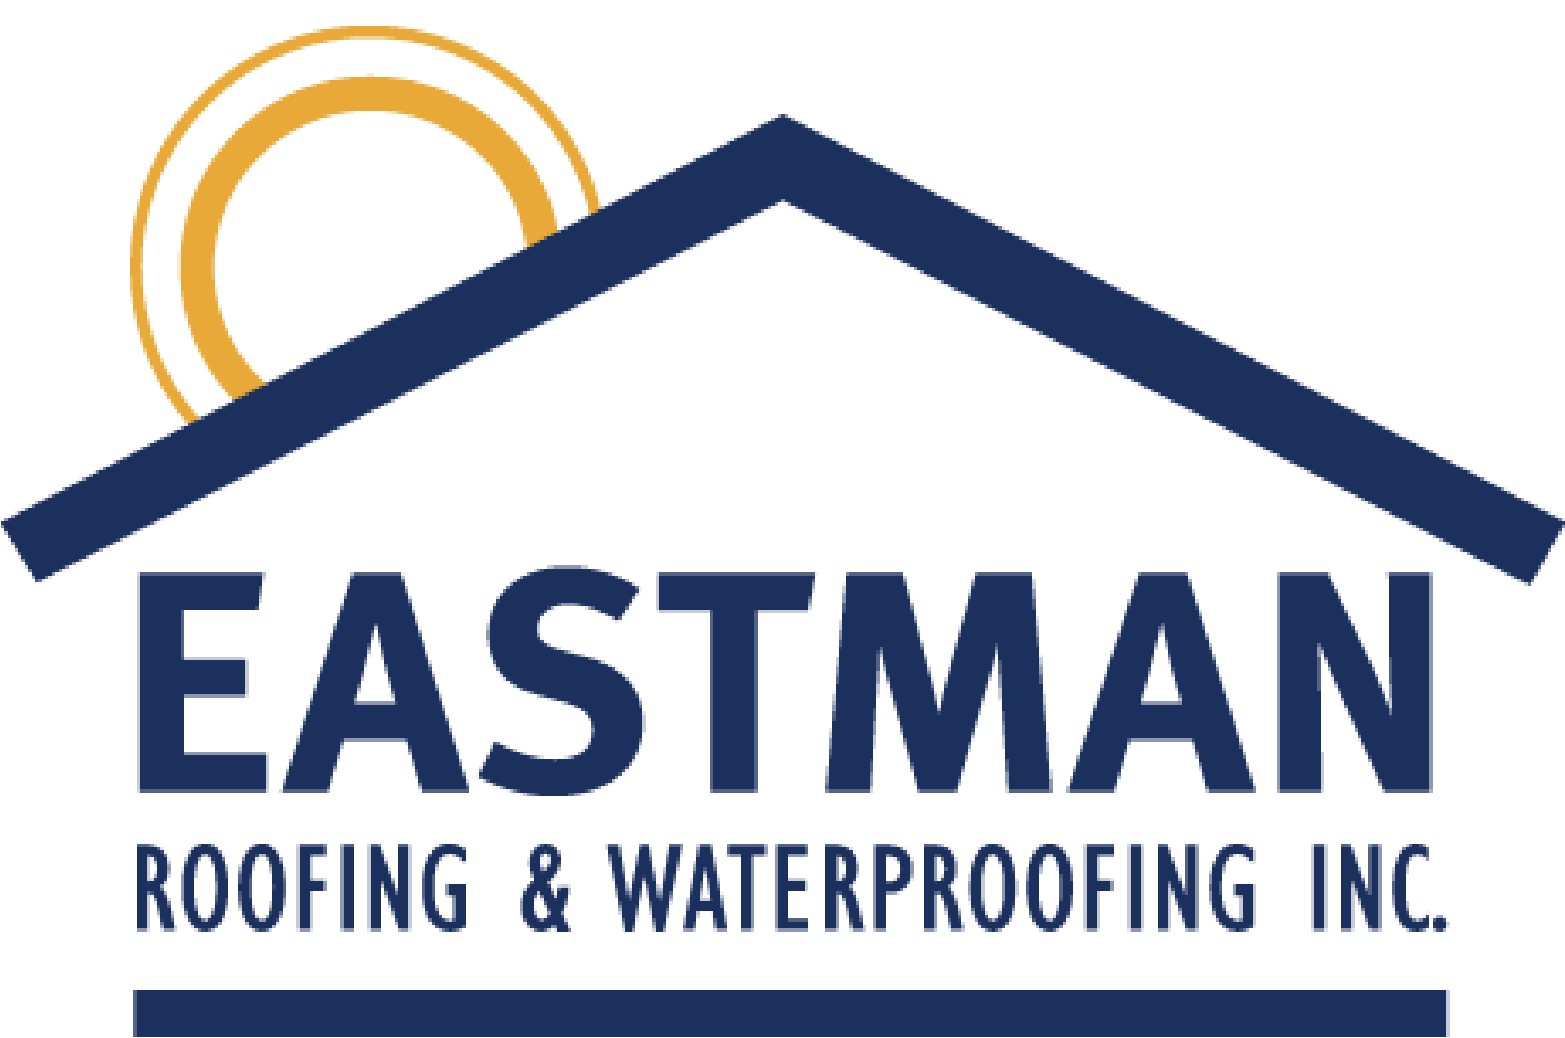 Eastman Roofing & Waterproofing Inc